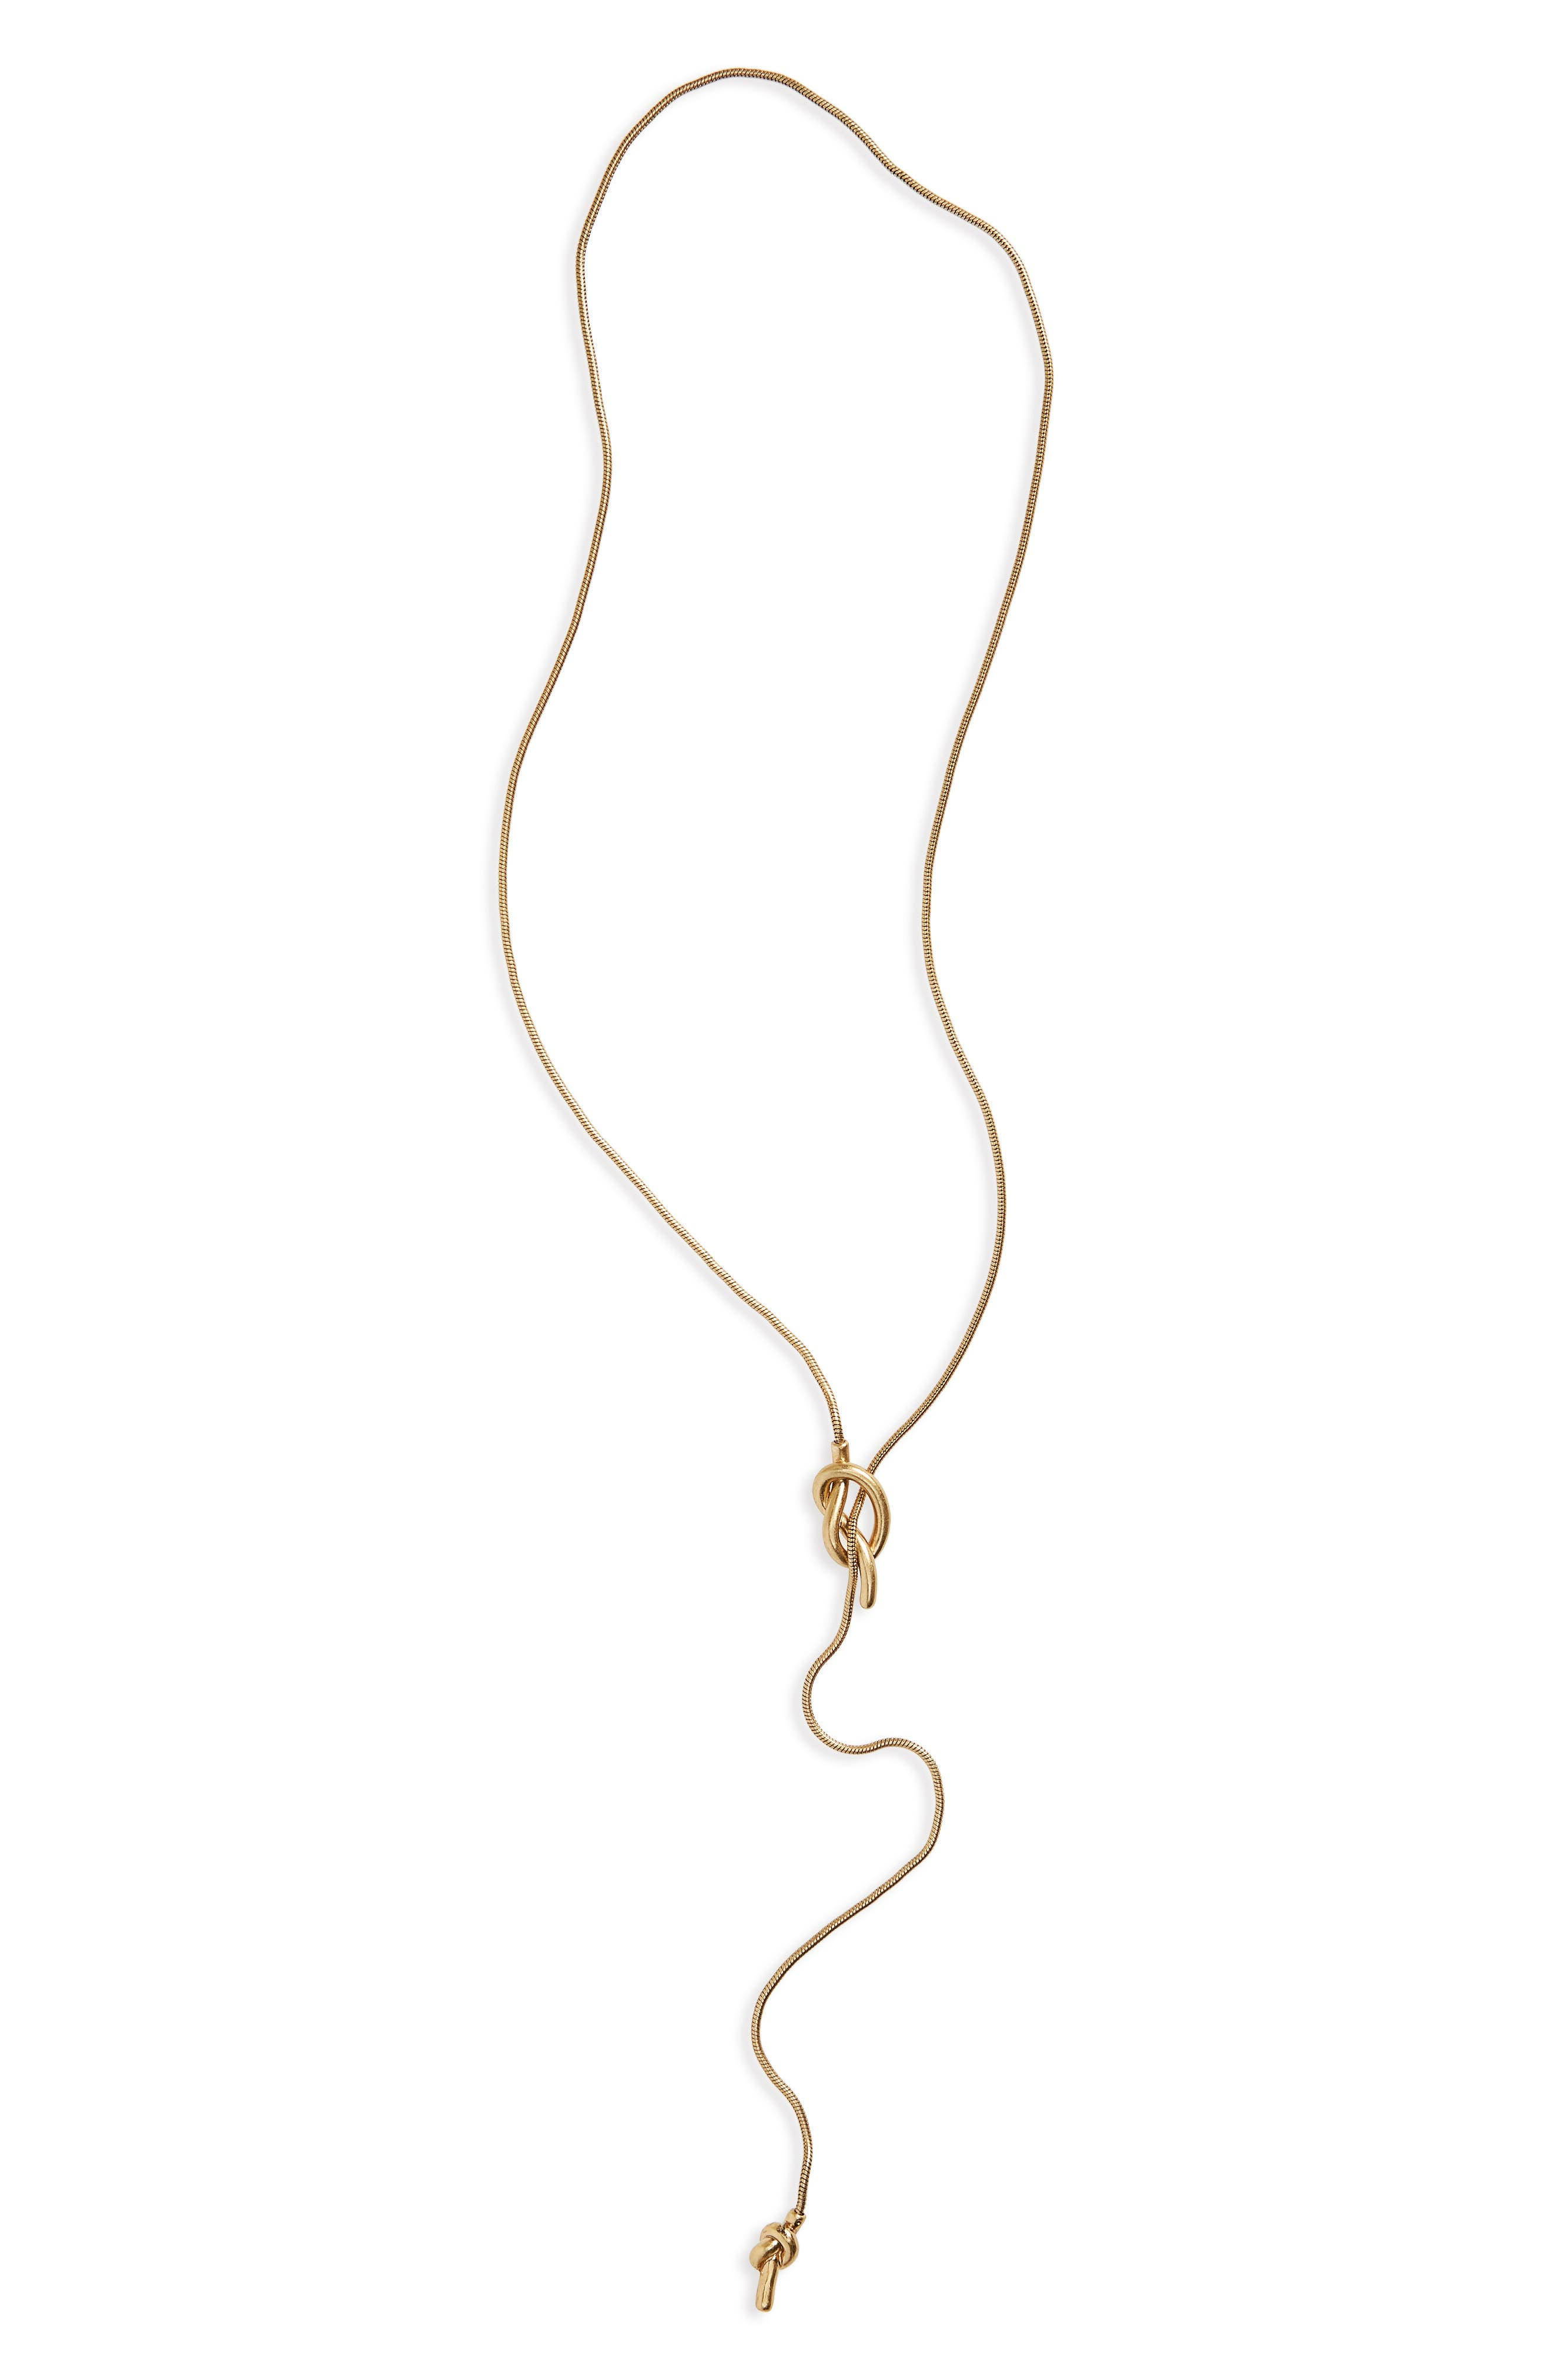 MADEWELL,                             'Knotshine' Necklace,                             Main thumbnail 1, color,                             GOLD OX